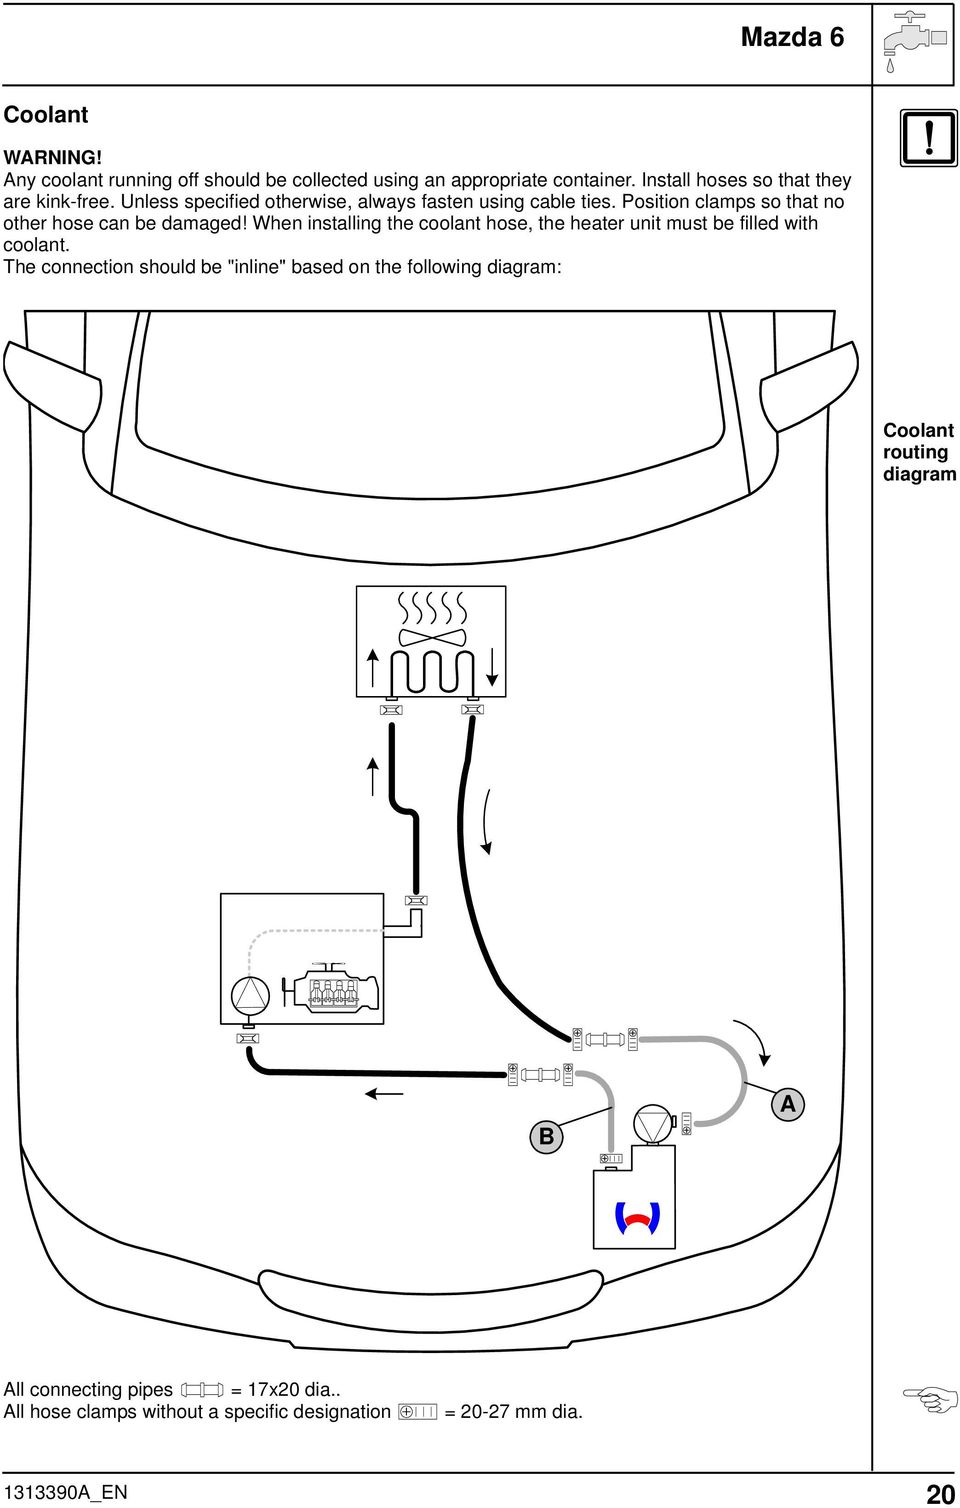 hight resolution of position clamps so that no other hose can be damaged when installing the coolant hose